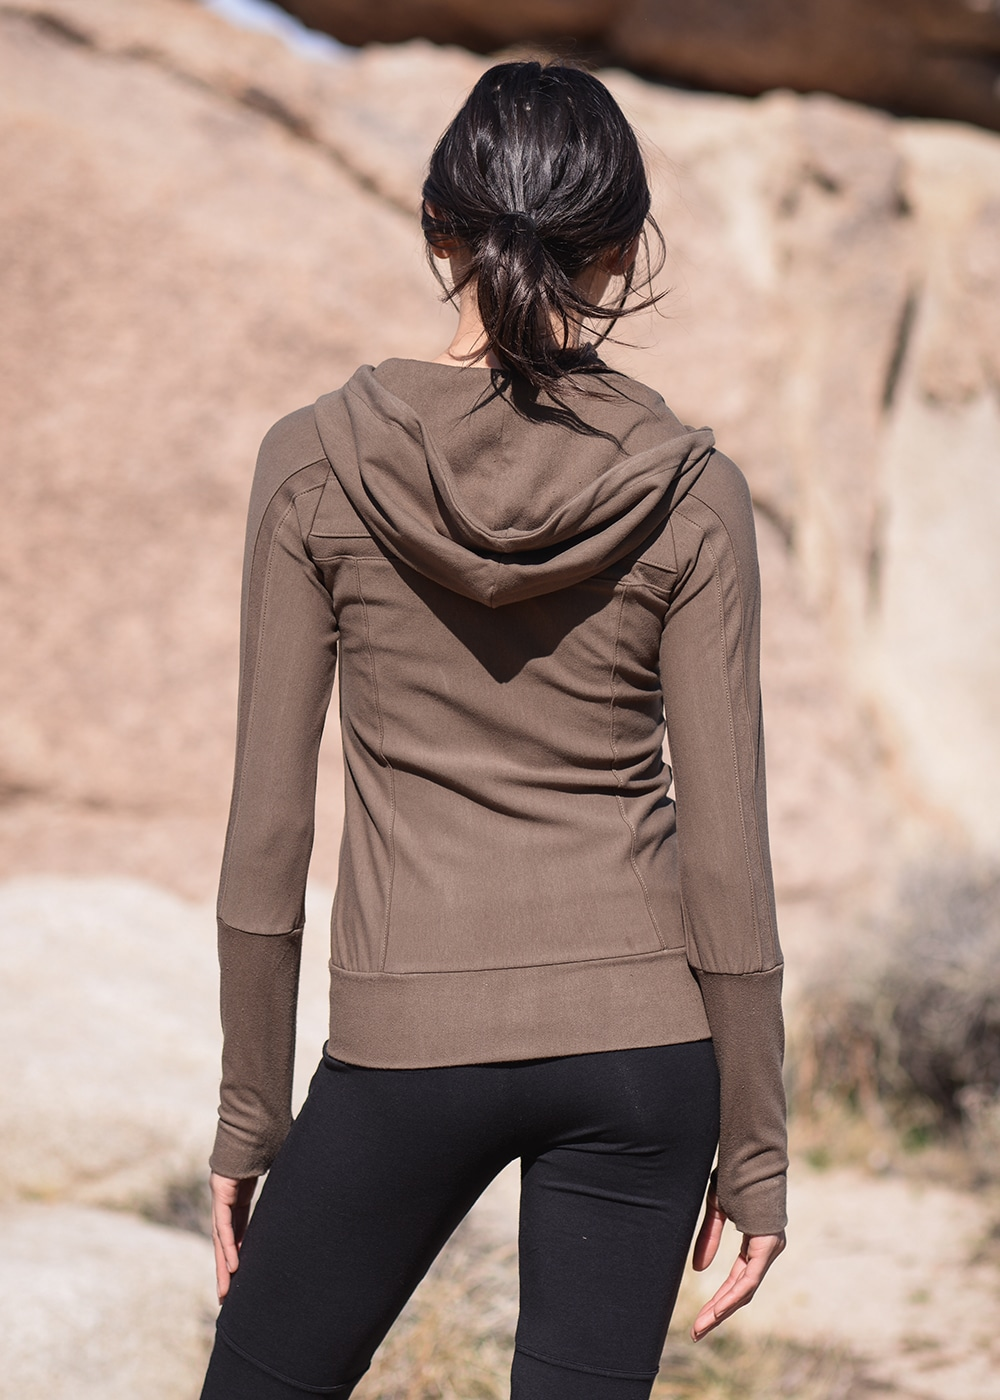 Bamboo and Organic Cotton Frequency Hoodie in Olive Green by Nomads Hemp Wear Back